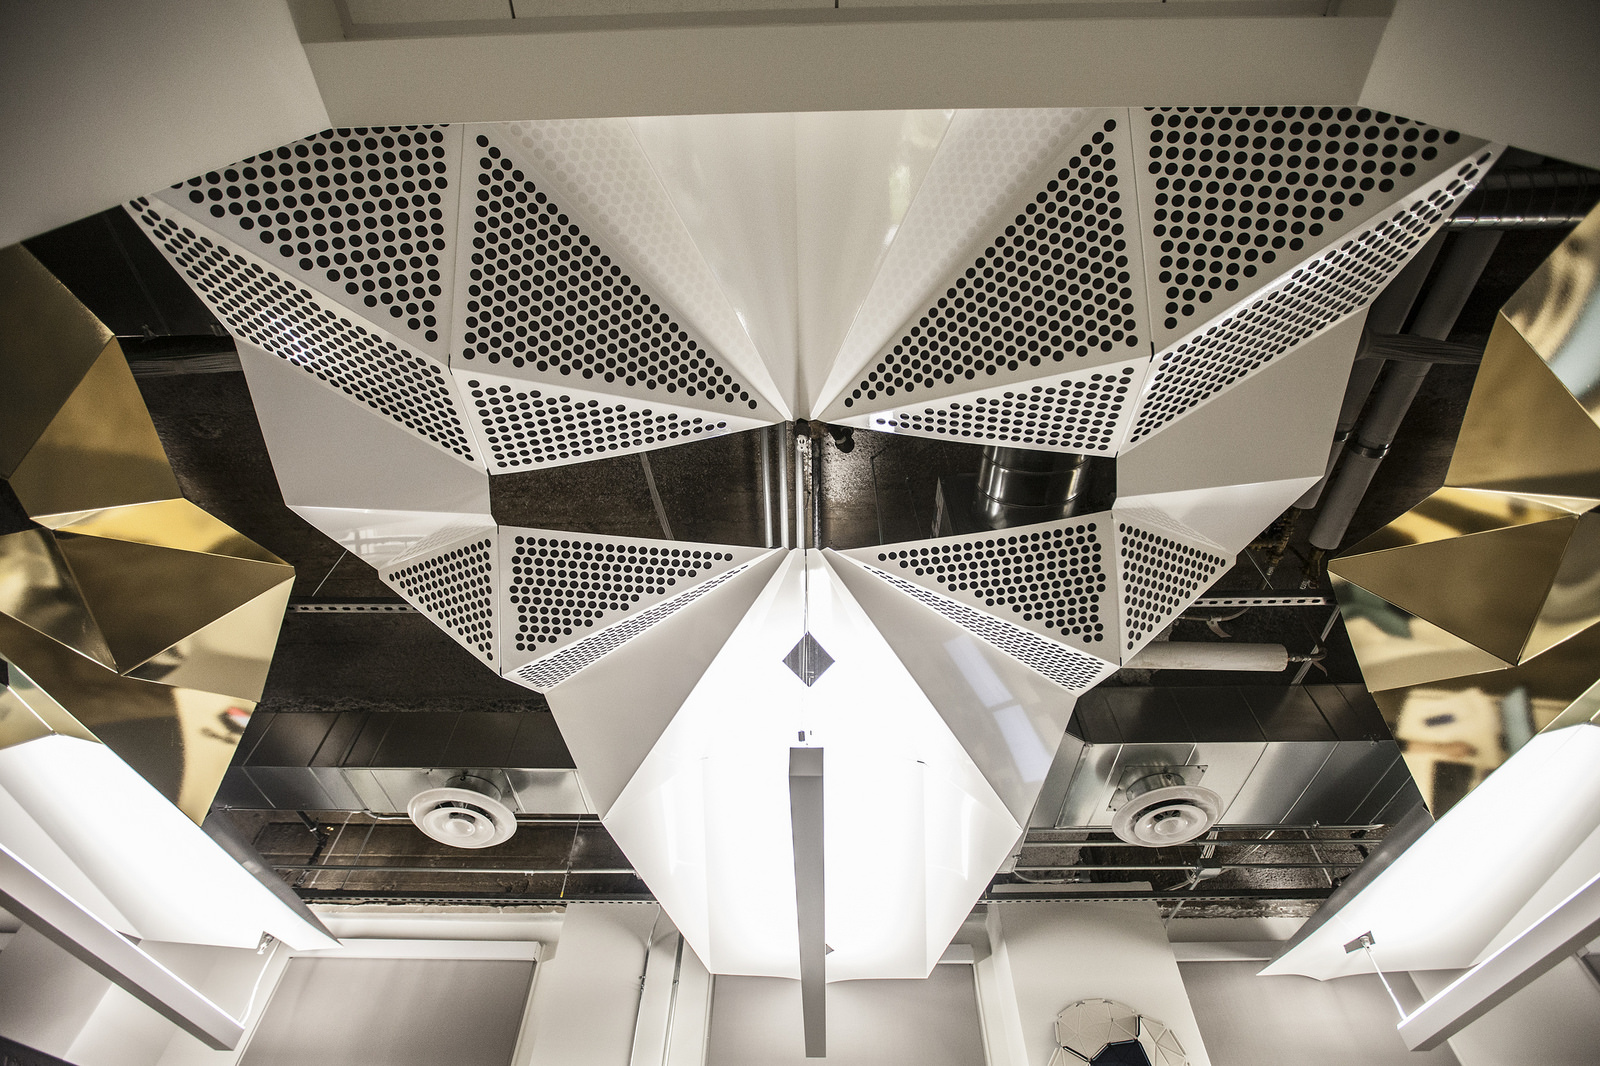 Metal ceiling - perforated metal - Because we can project